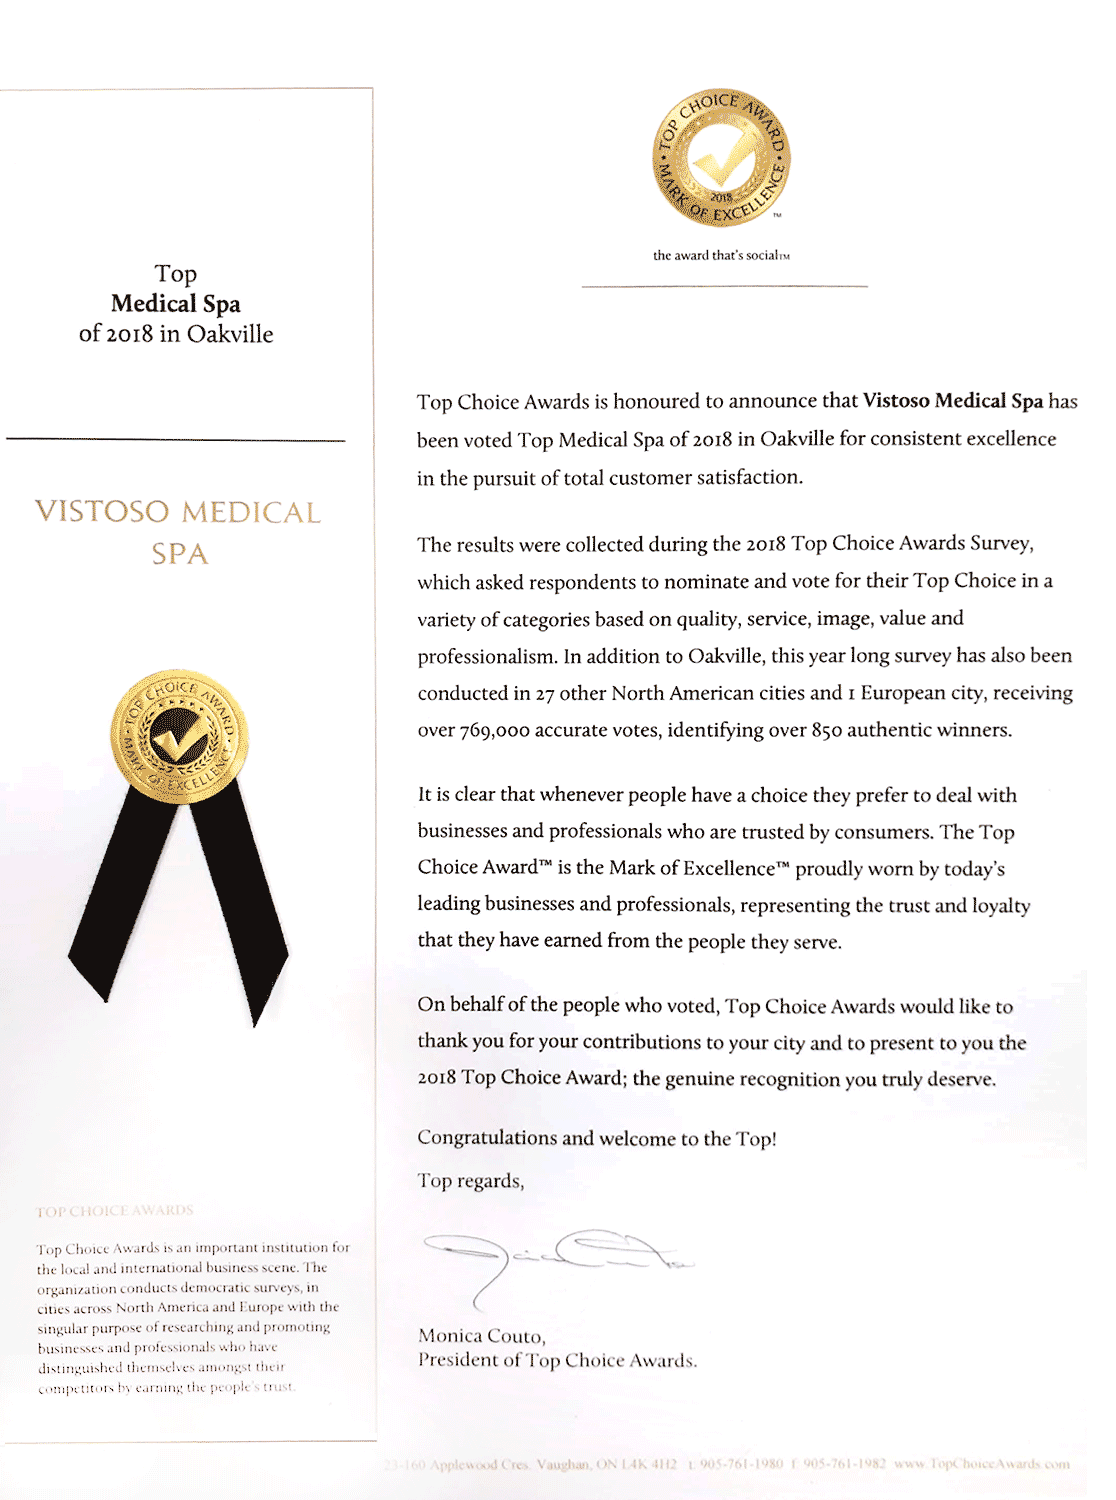 Vistoso med spa Top Choice Award